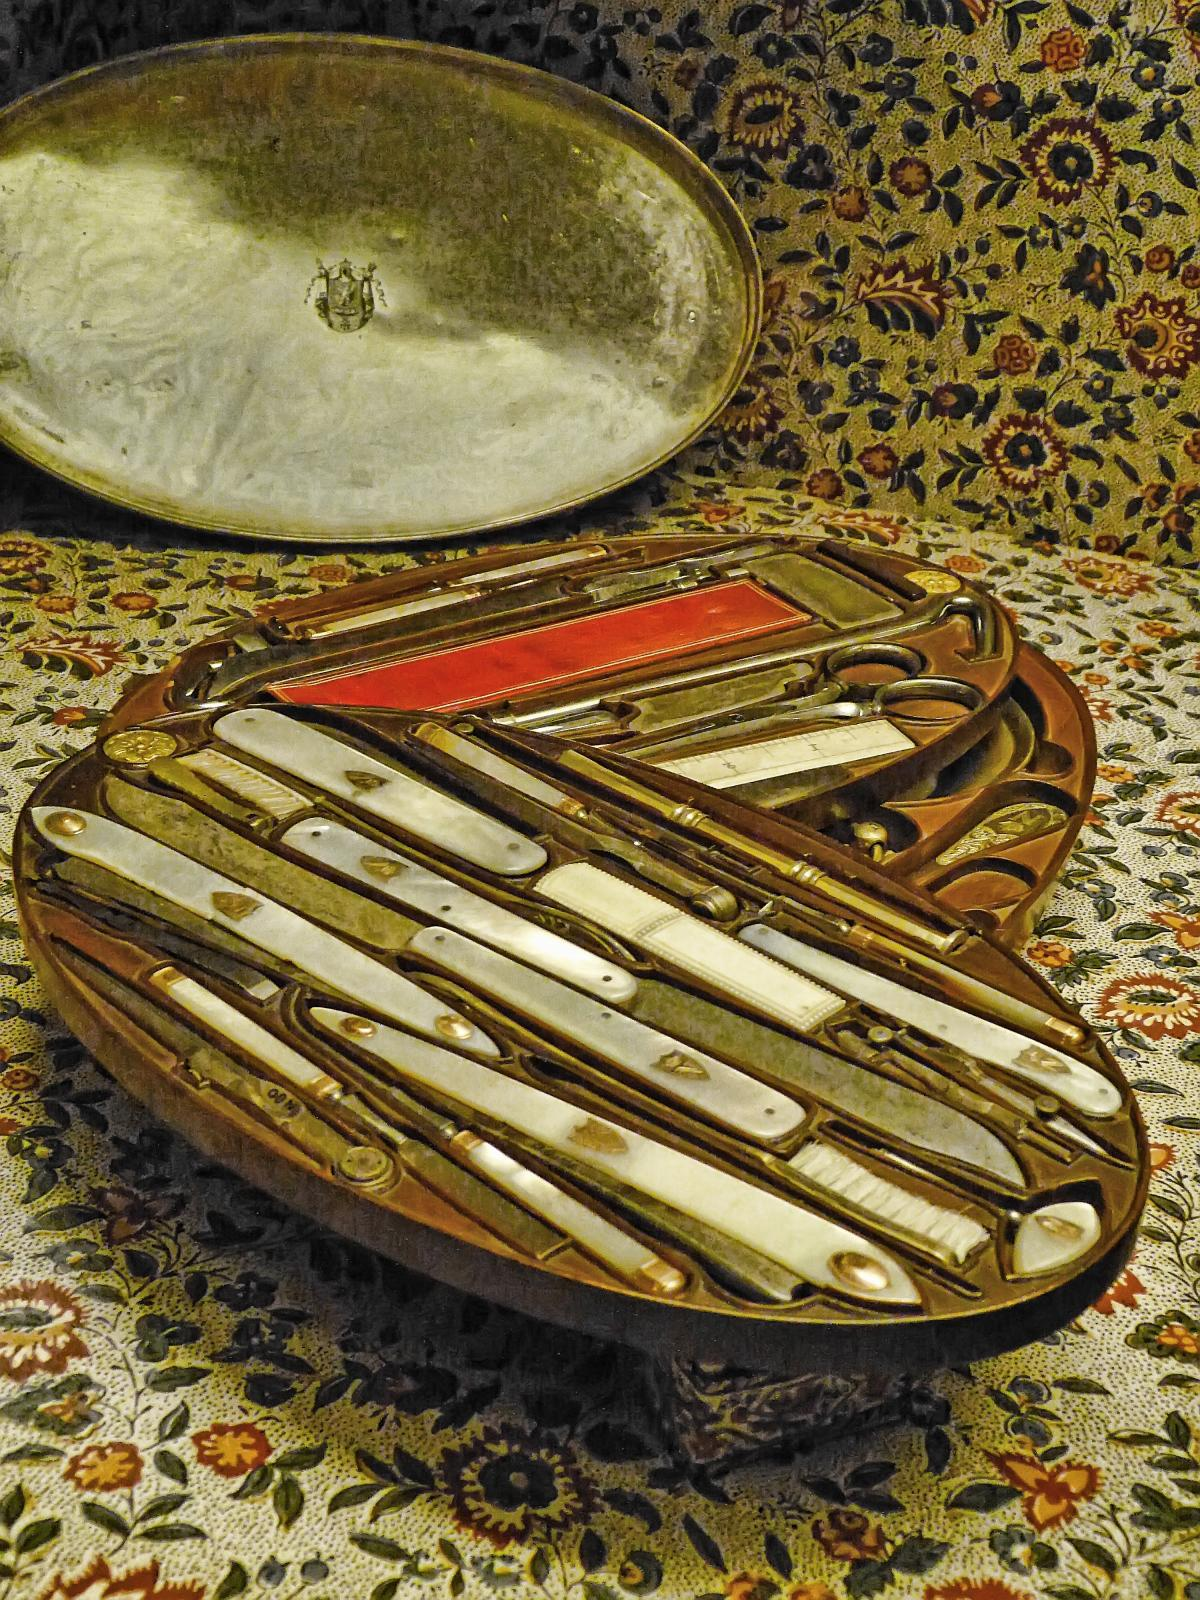 Napoleon's pearl-handled grooming kit with gold accents at Fontainebleau